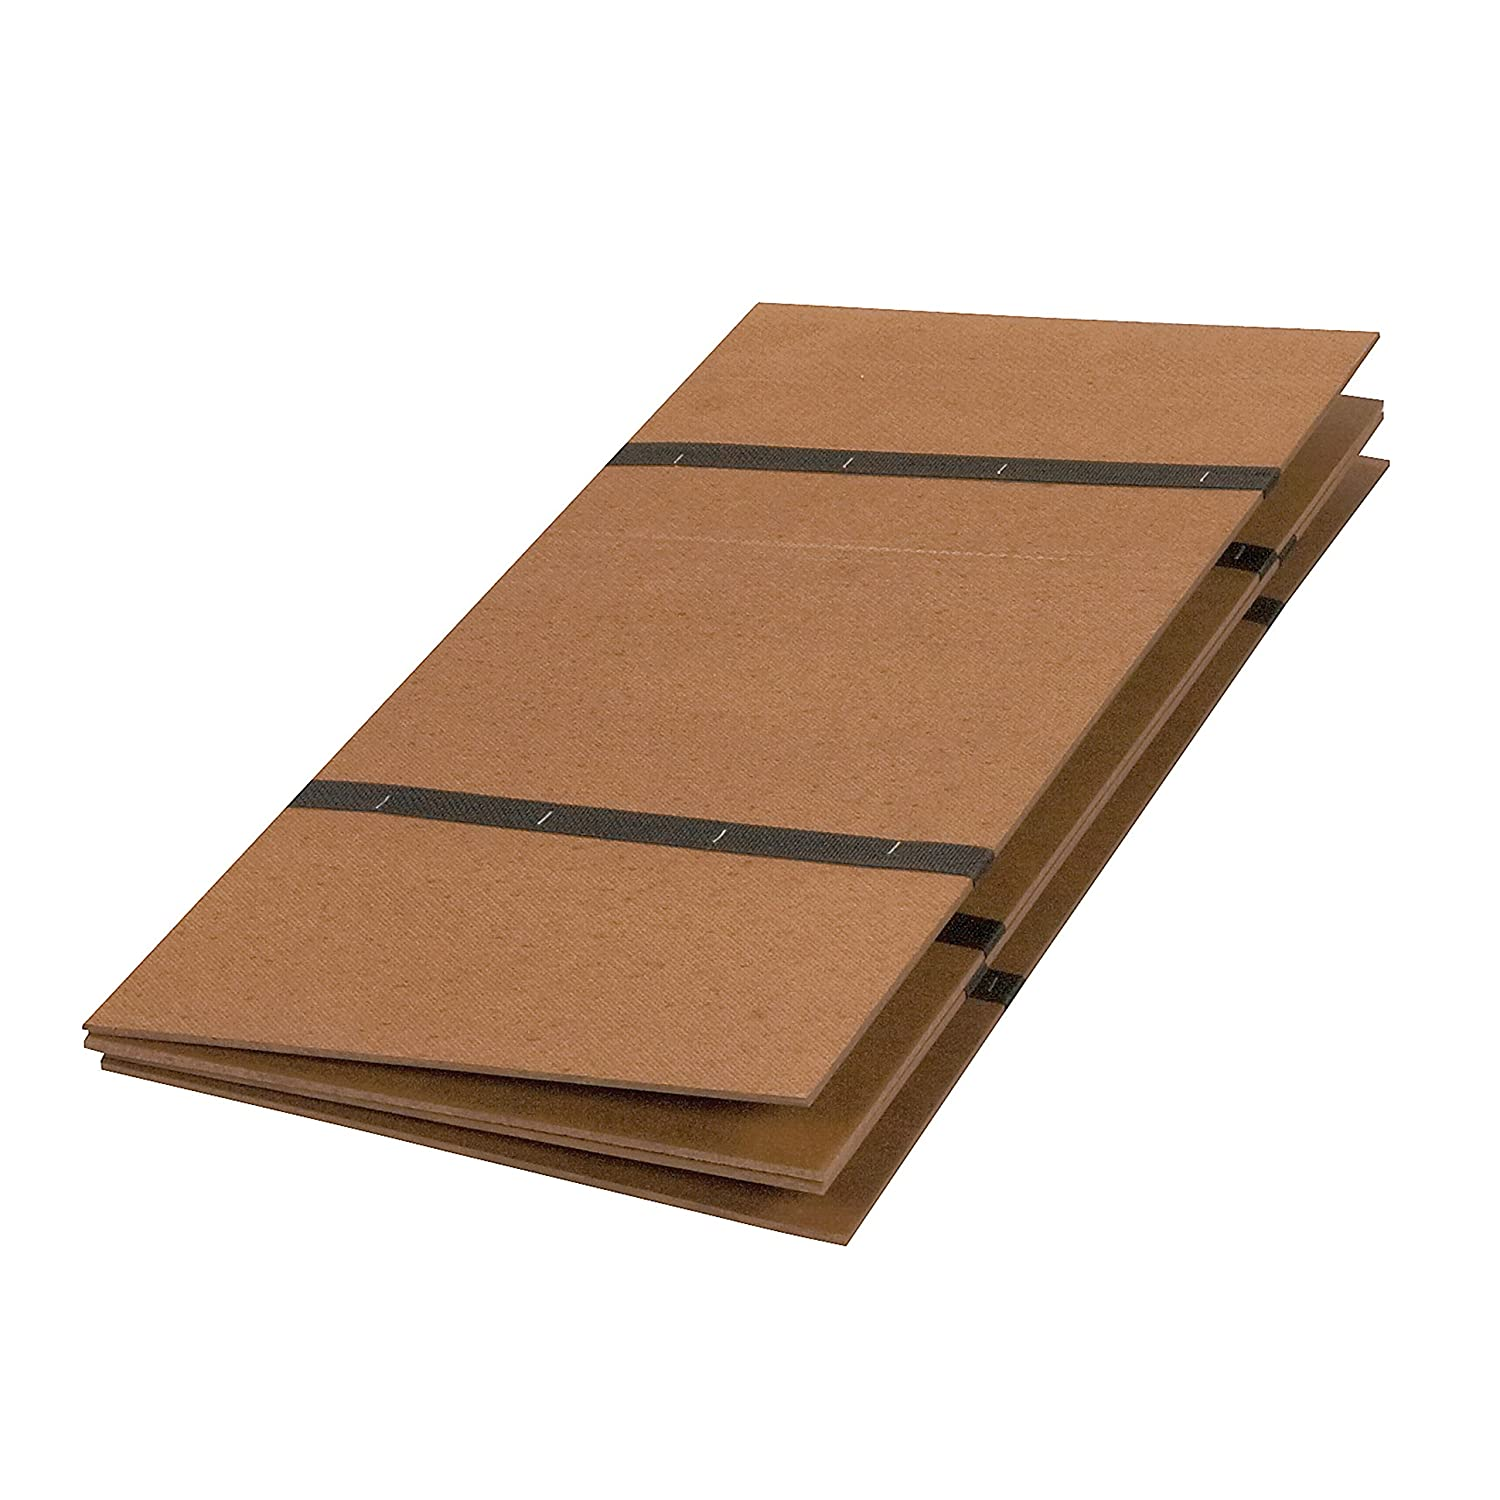 Amazoncom DMI Folding Bed Board Bunky Board Double Size Brown